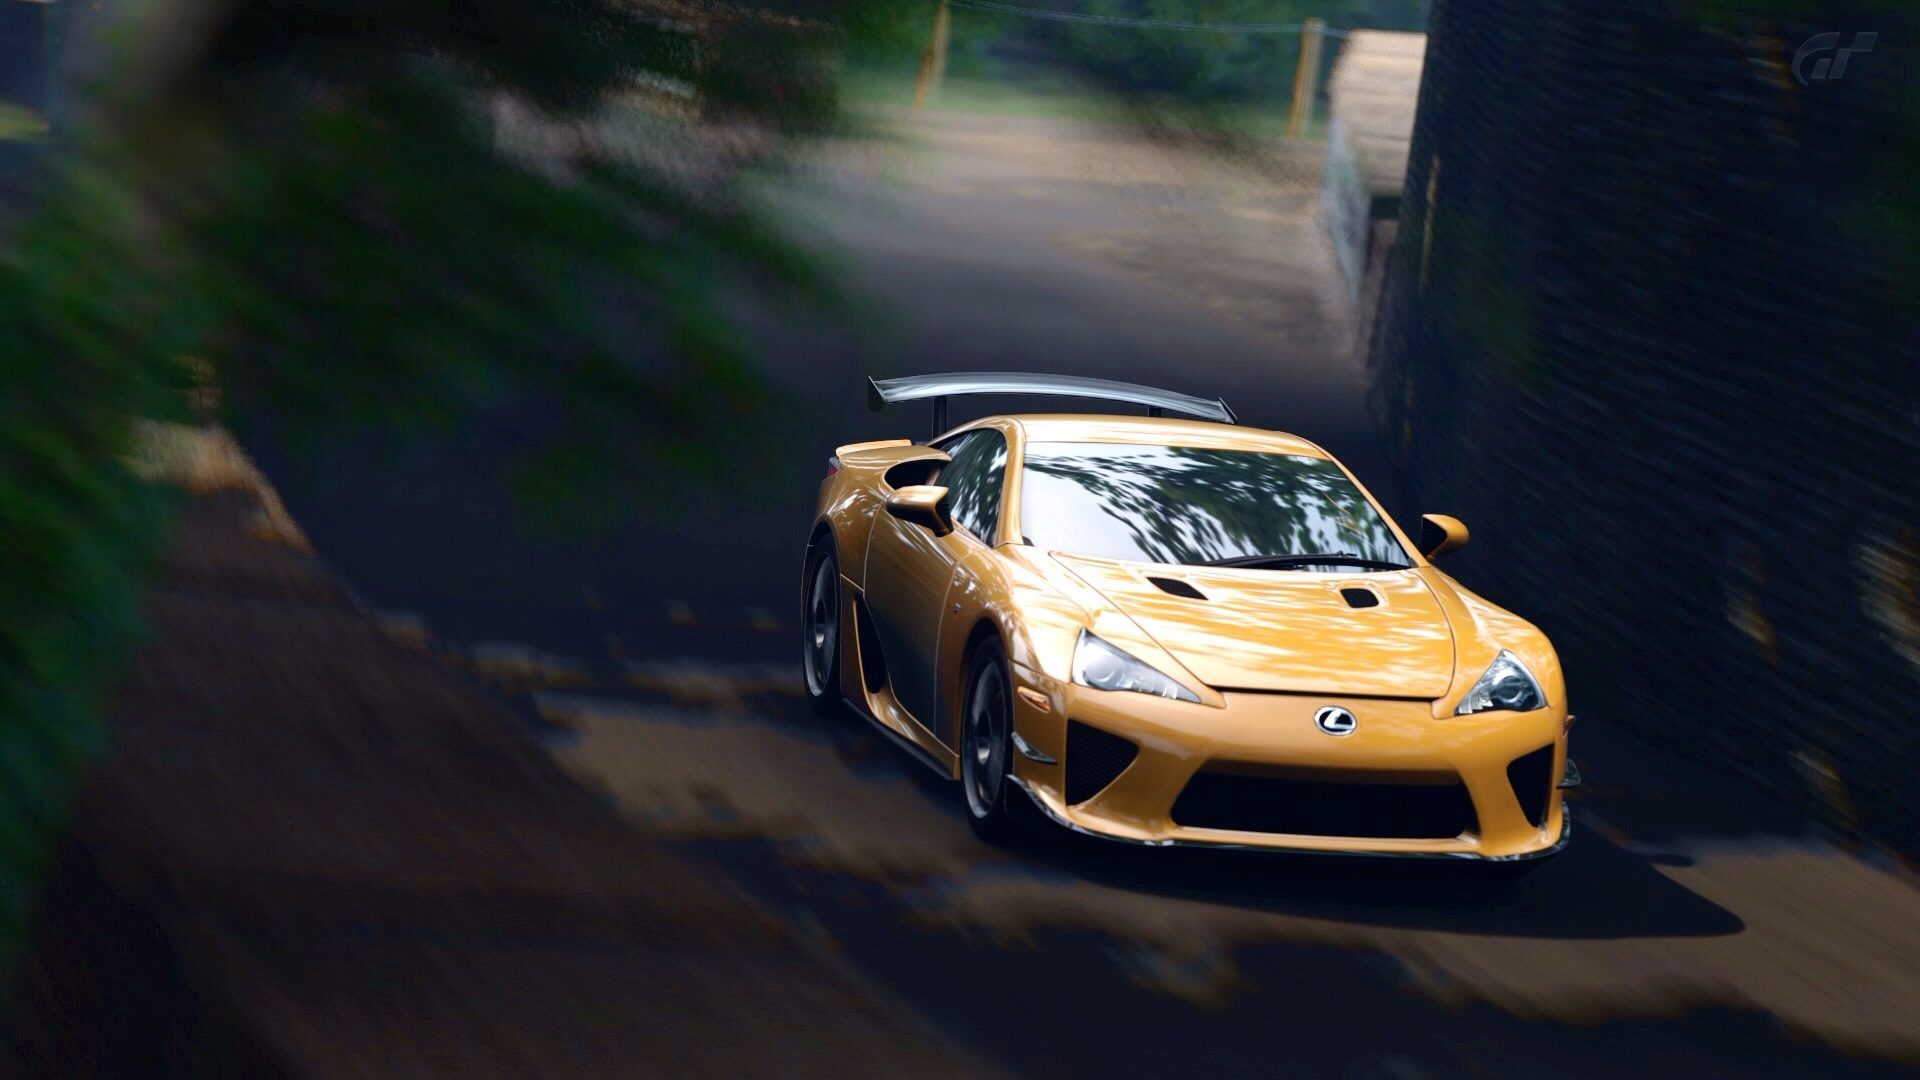 LFA Nurburgring Ed. Goodwood (4).jpg